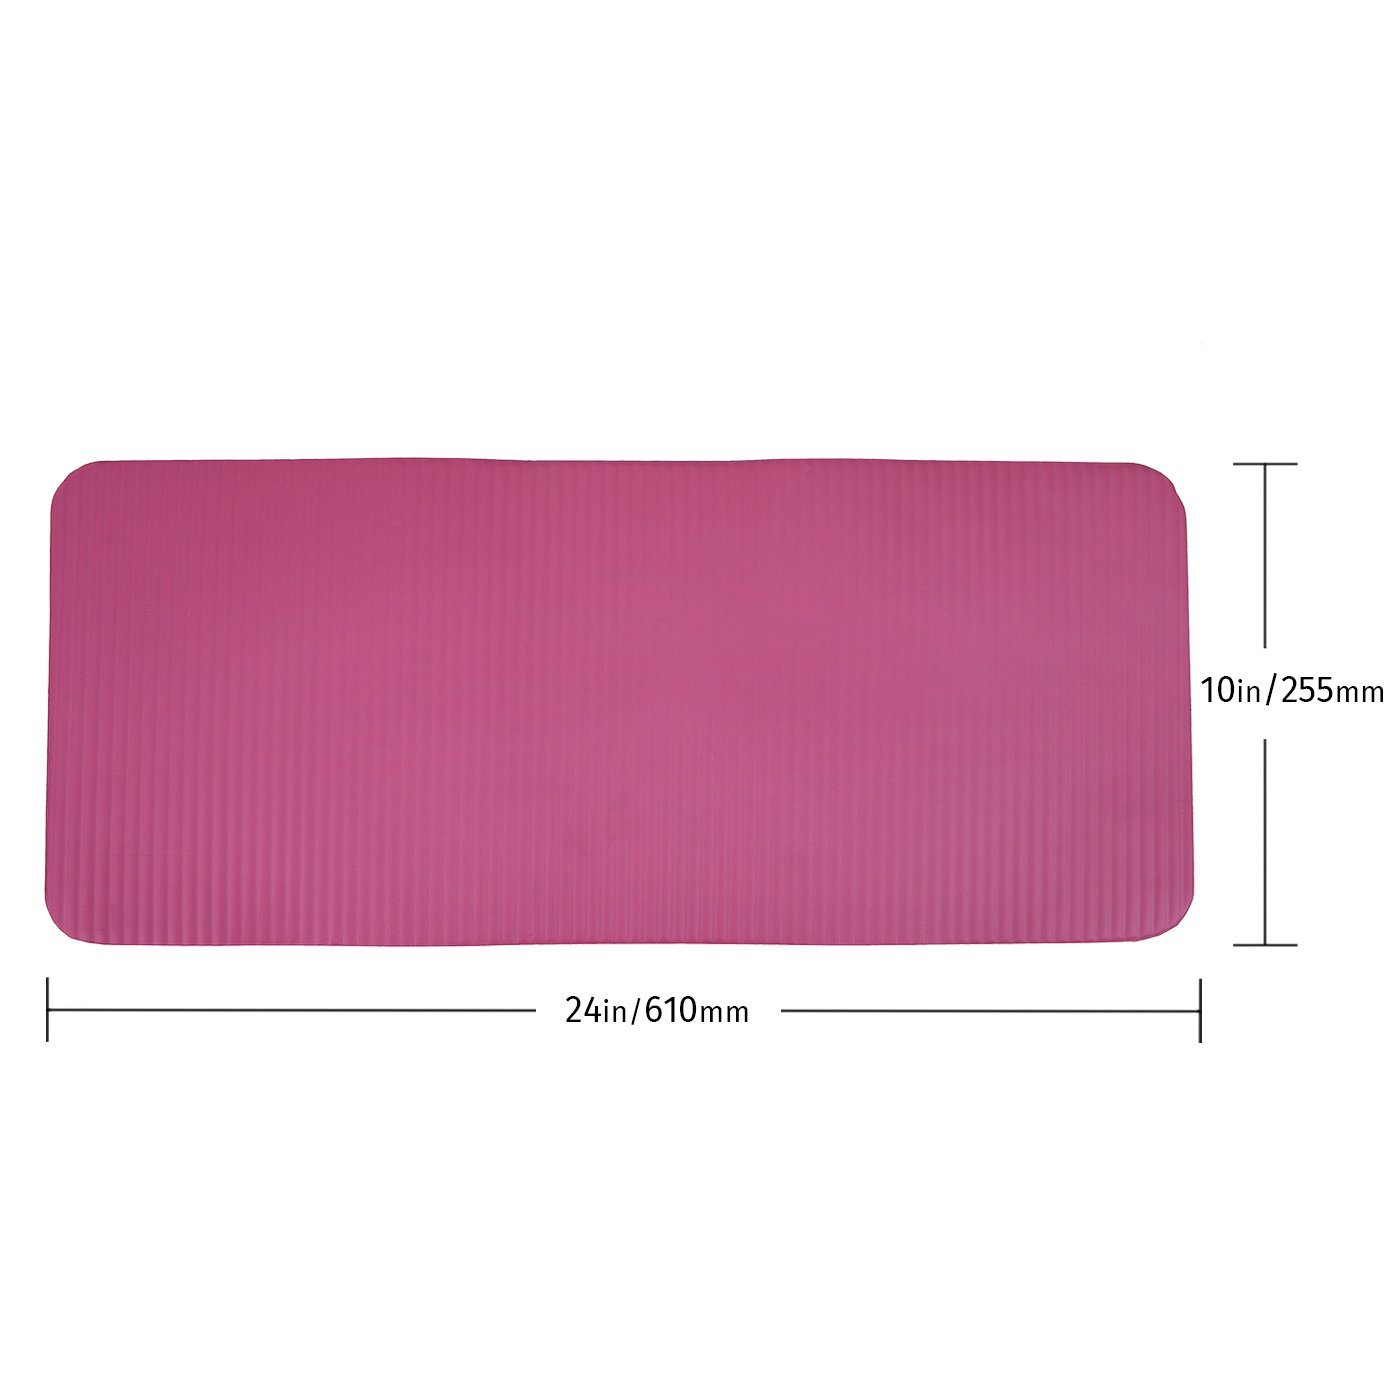 167619d1657 HDE Yoga Knee Pad 15mm Thick Anti-Slip Workout Mat for Yoga Pilates Fitness  and